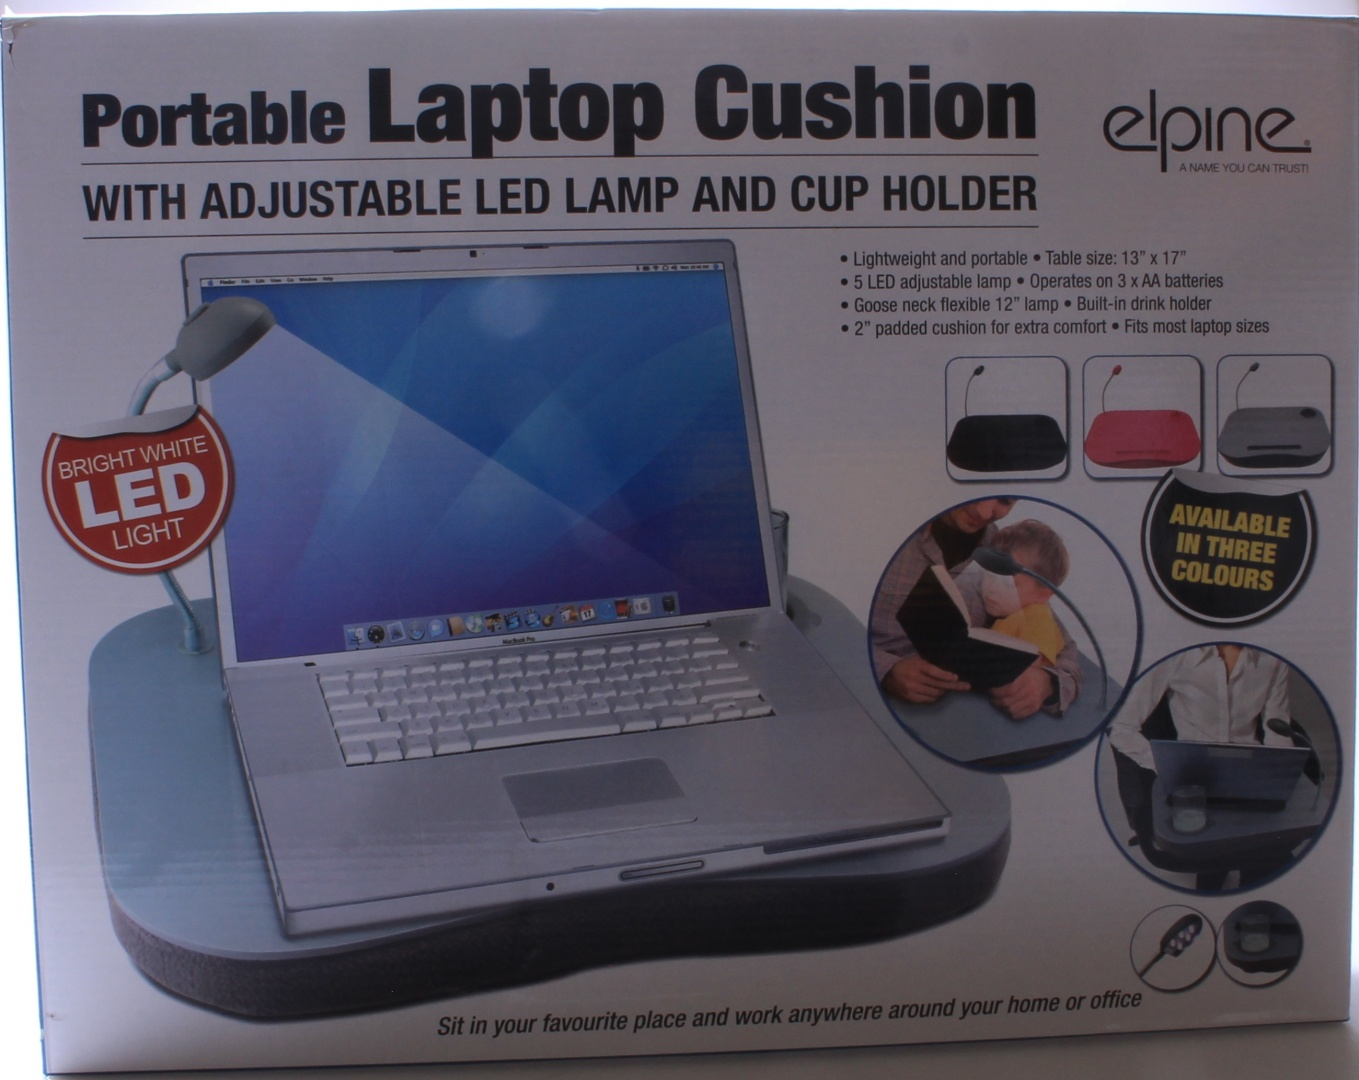 Pink Multifunction Lap Tray Cushion Portable Laptop Table W 5 Led Lamp Cup Holder